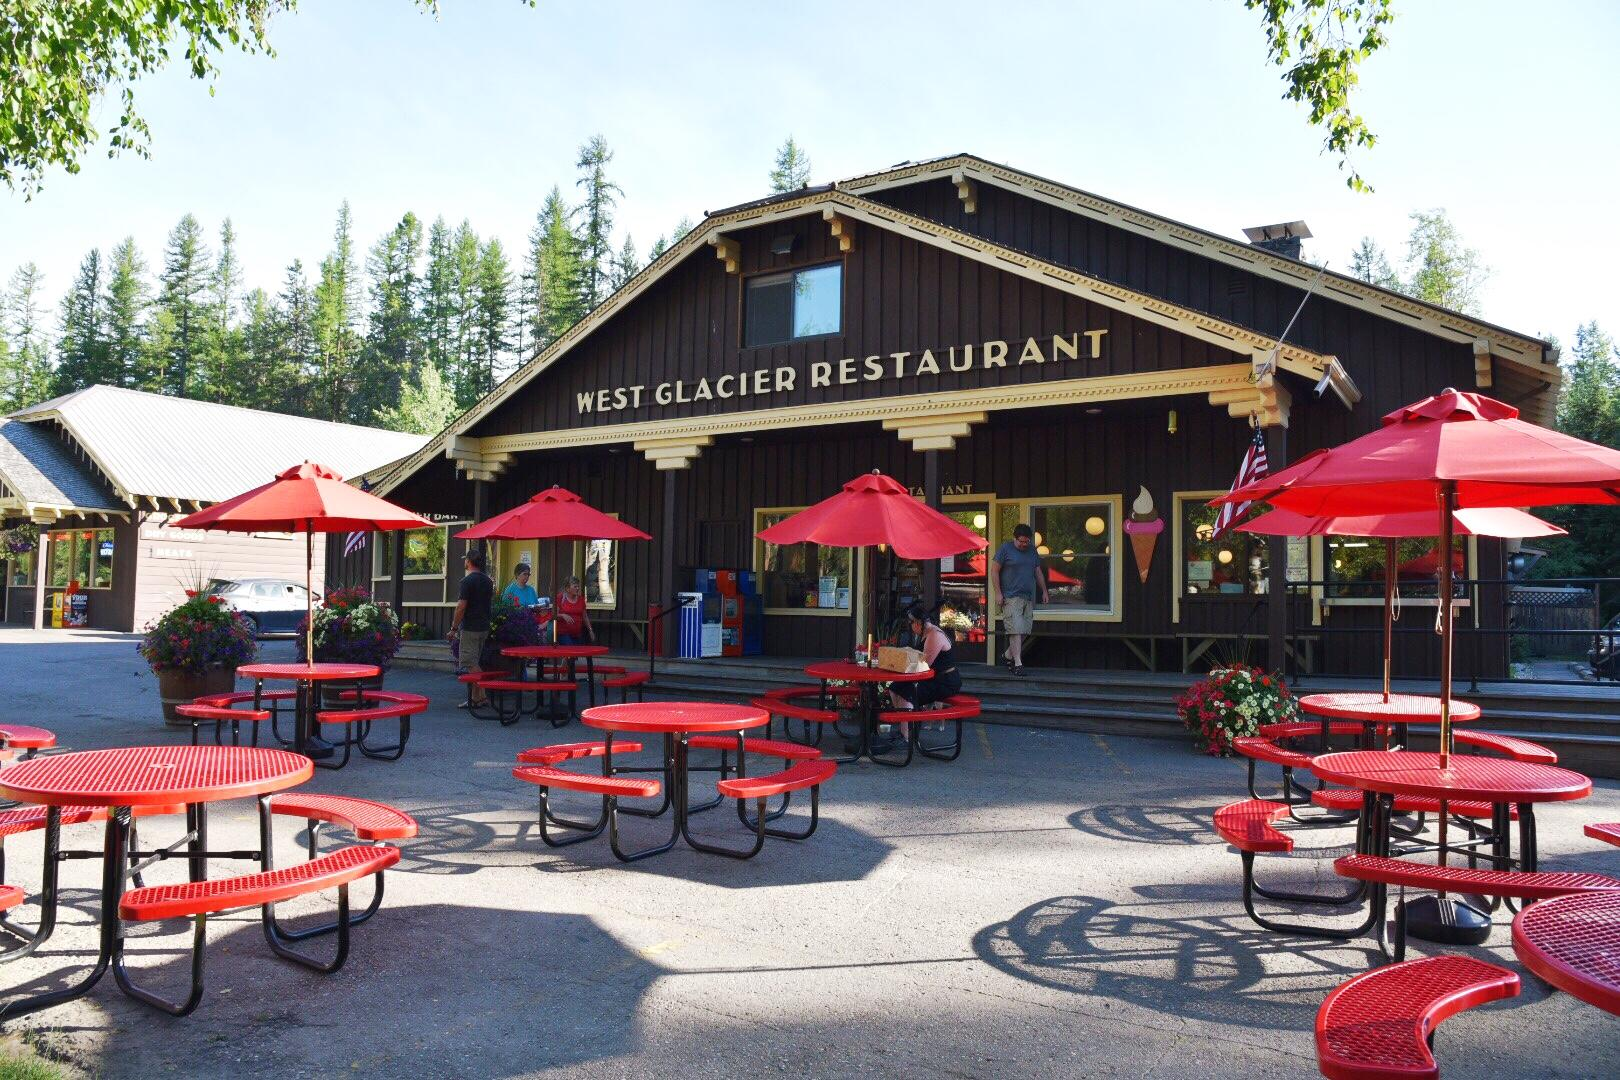 The West Glacier Grill offered a hearty meal that filled us up. The elk burger was a hit as was the homemade pie. (Image: Rebecca Mongrain/Seattle Refined)